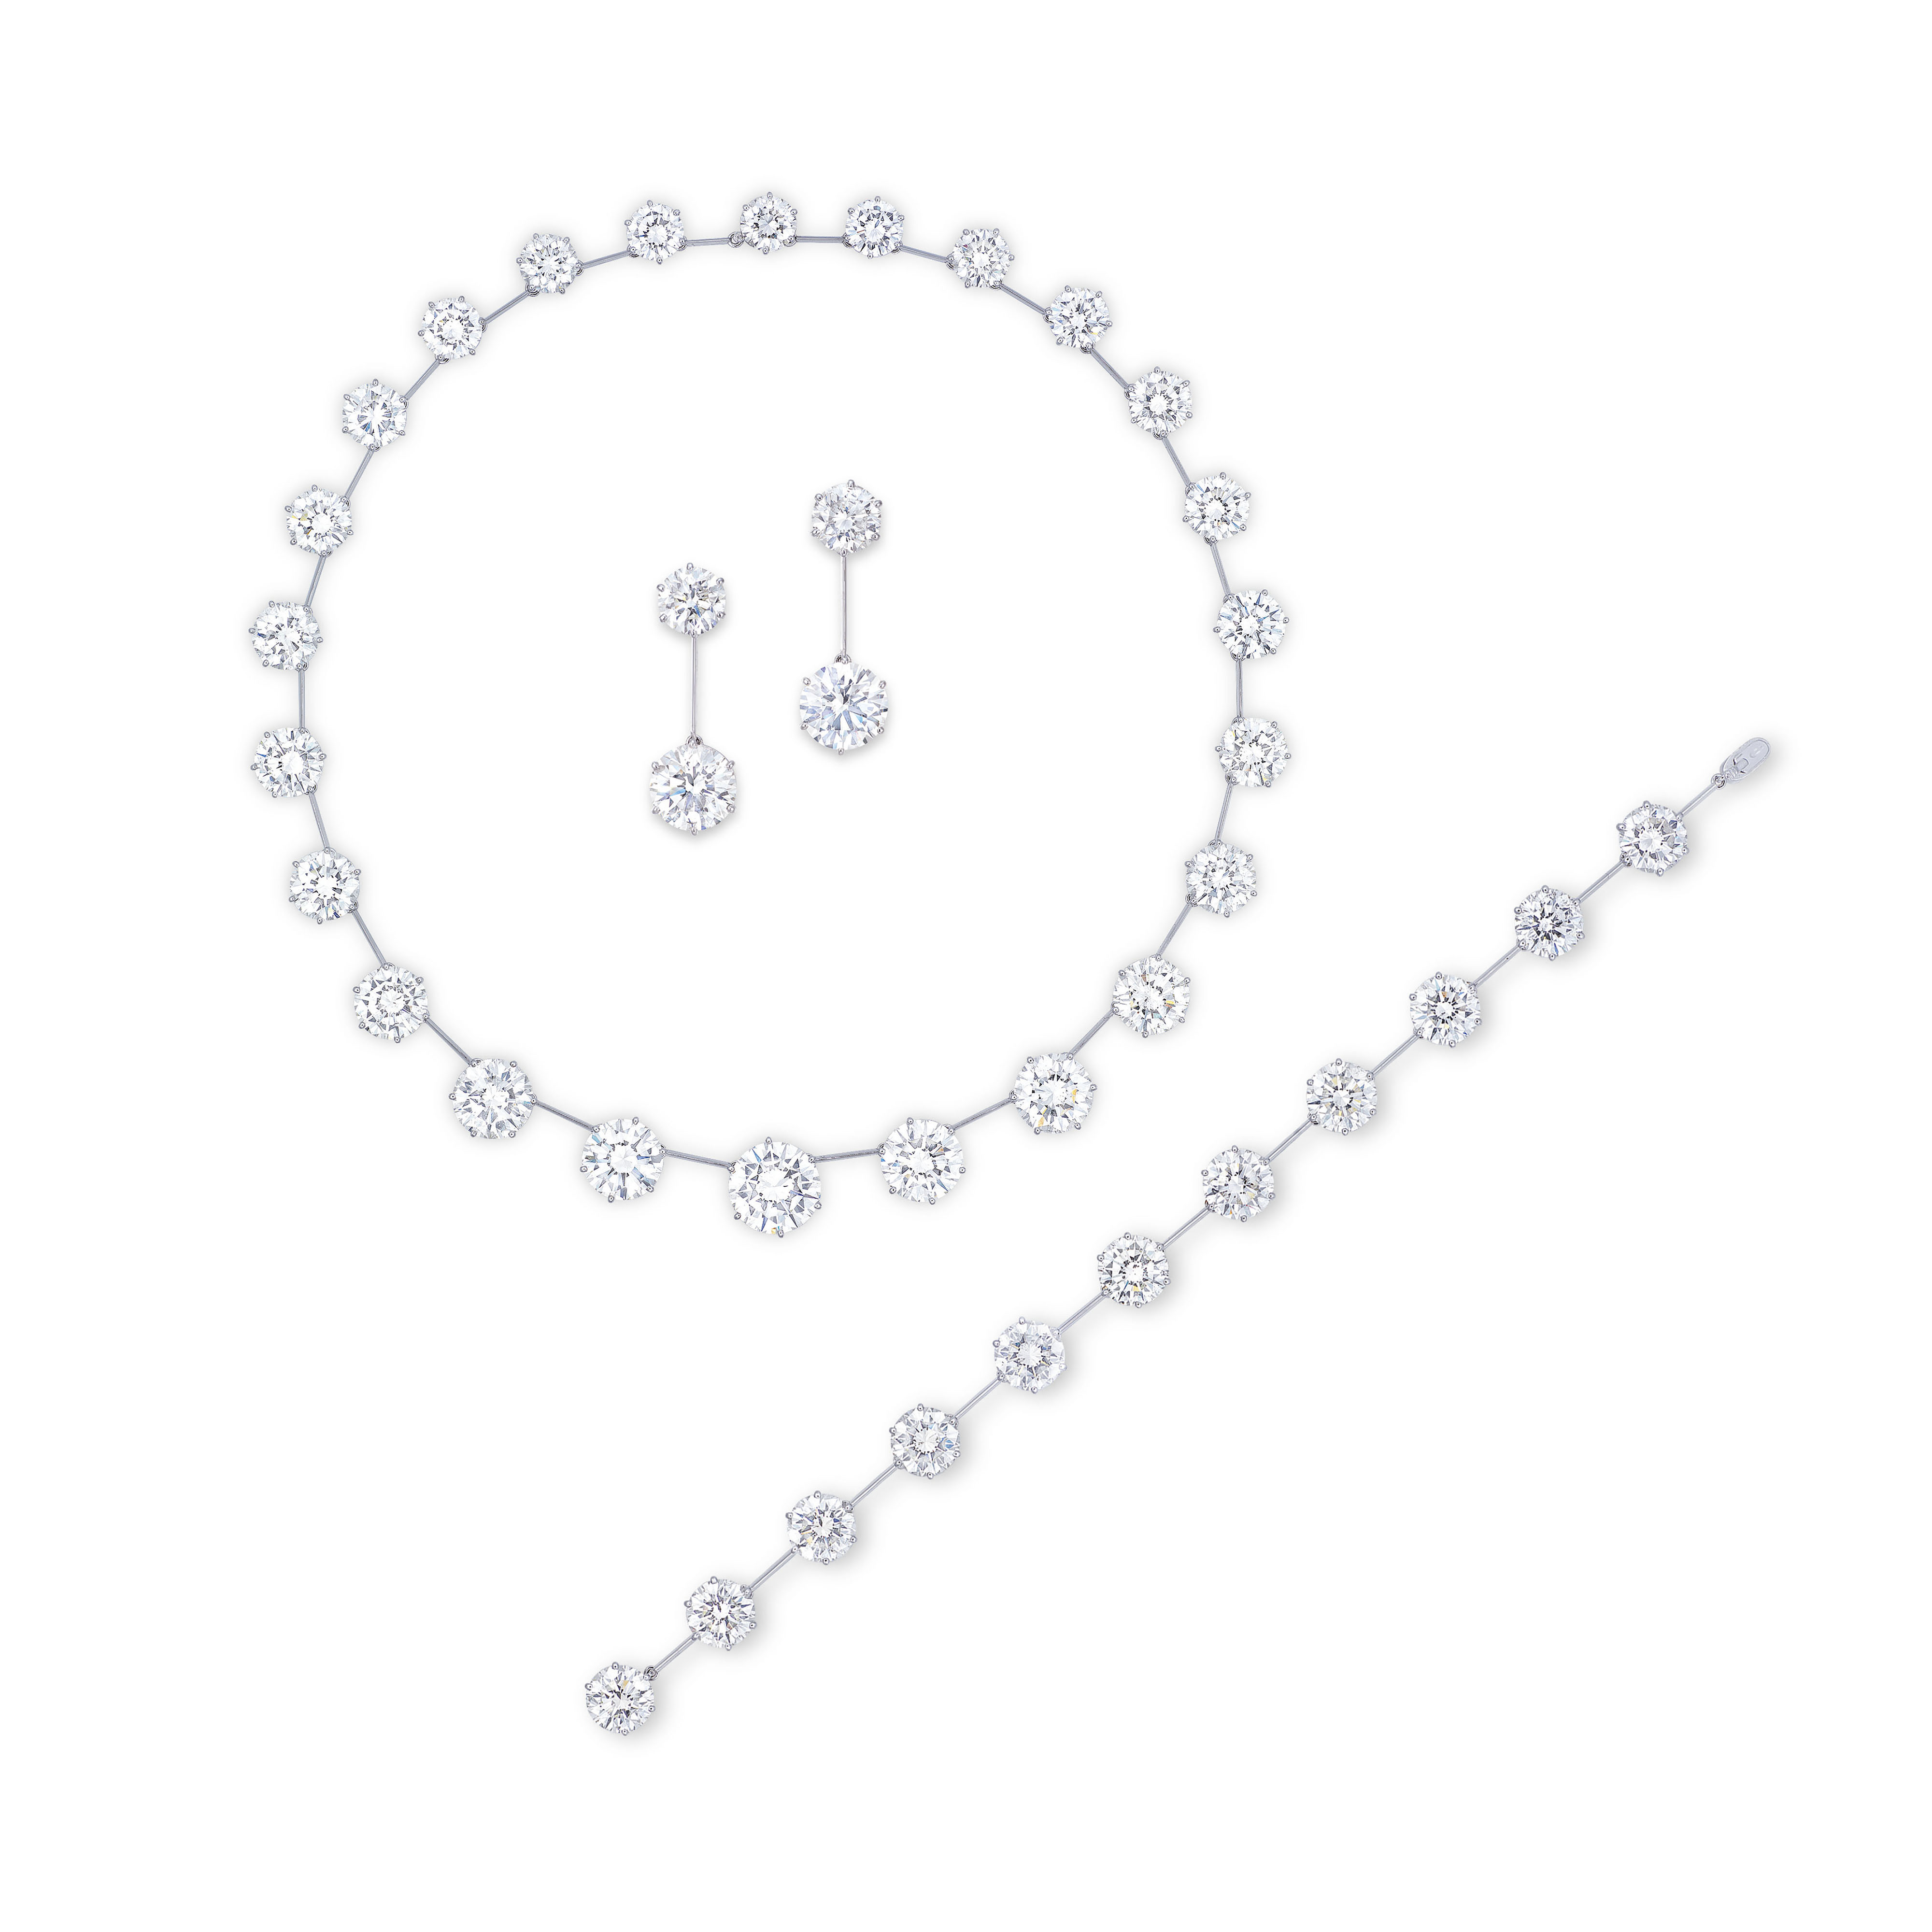 A SUITE OF DIAMOND JEWELLERY, BY GIMEL